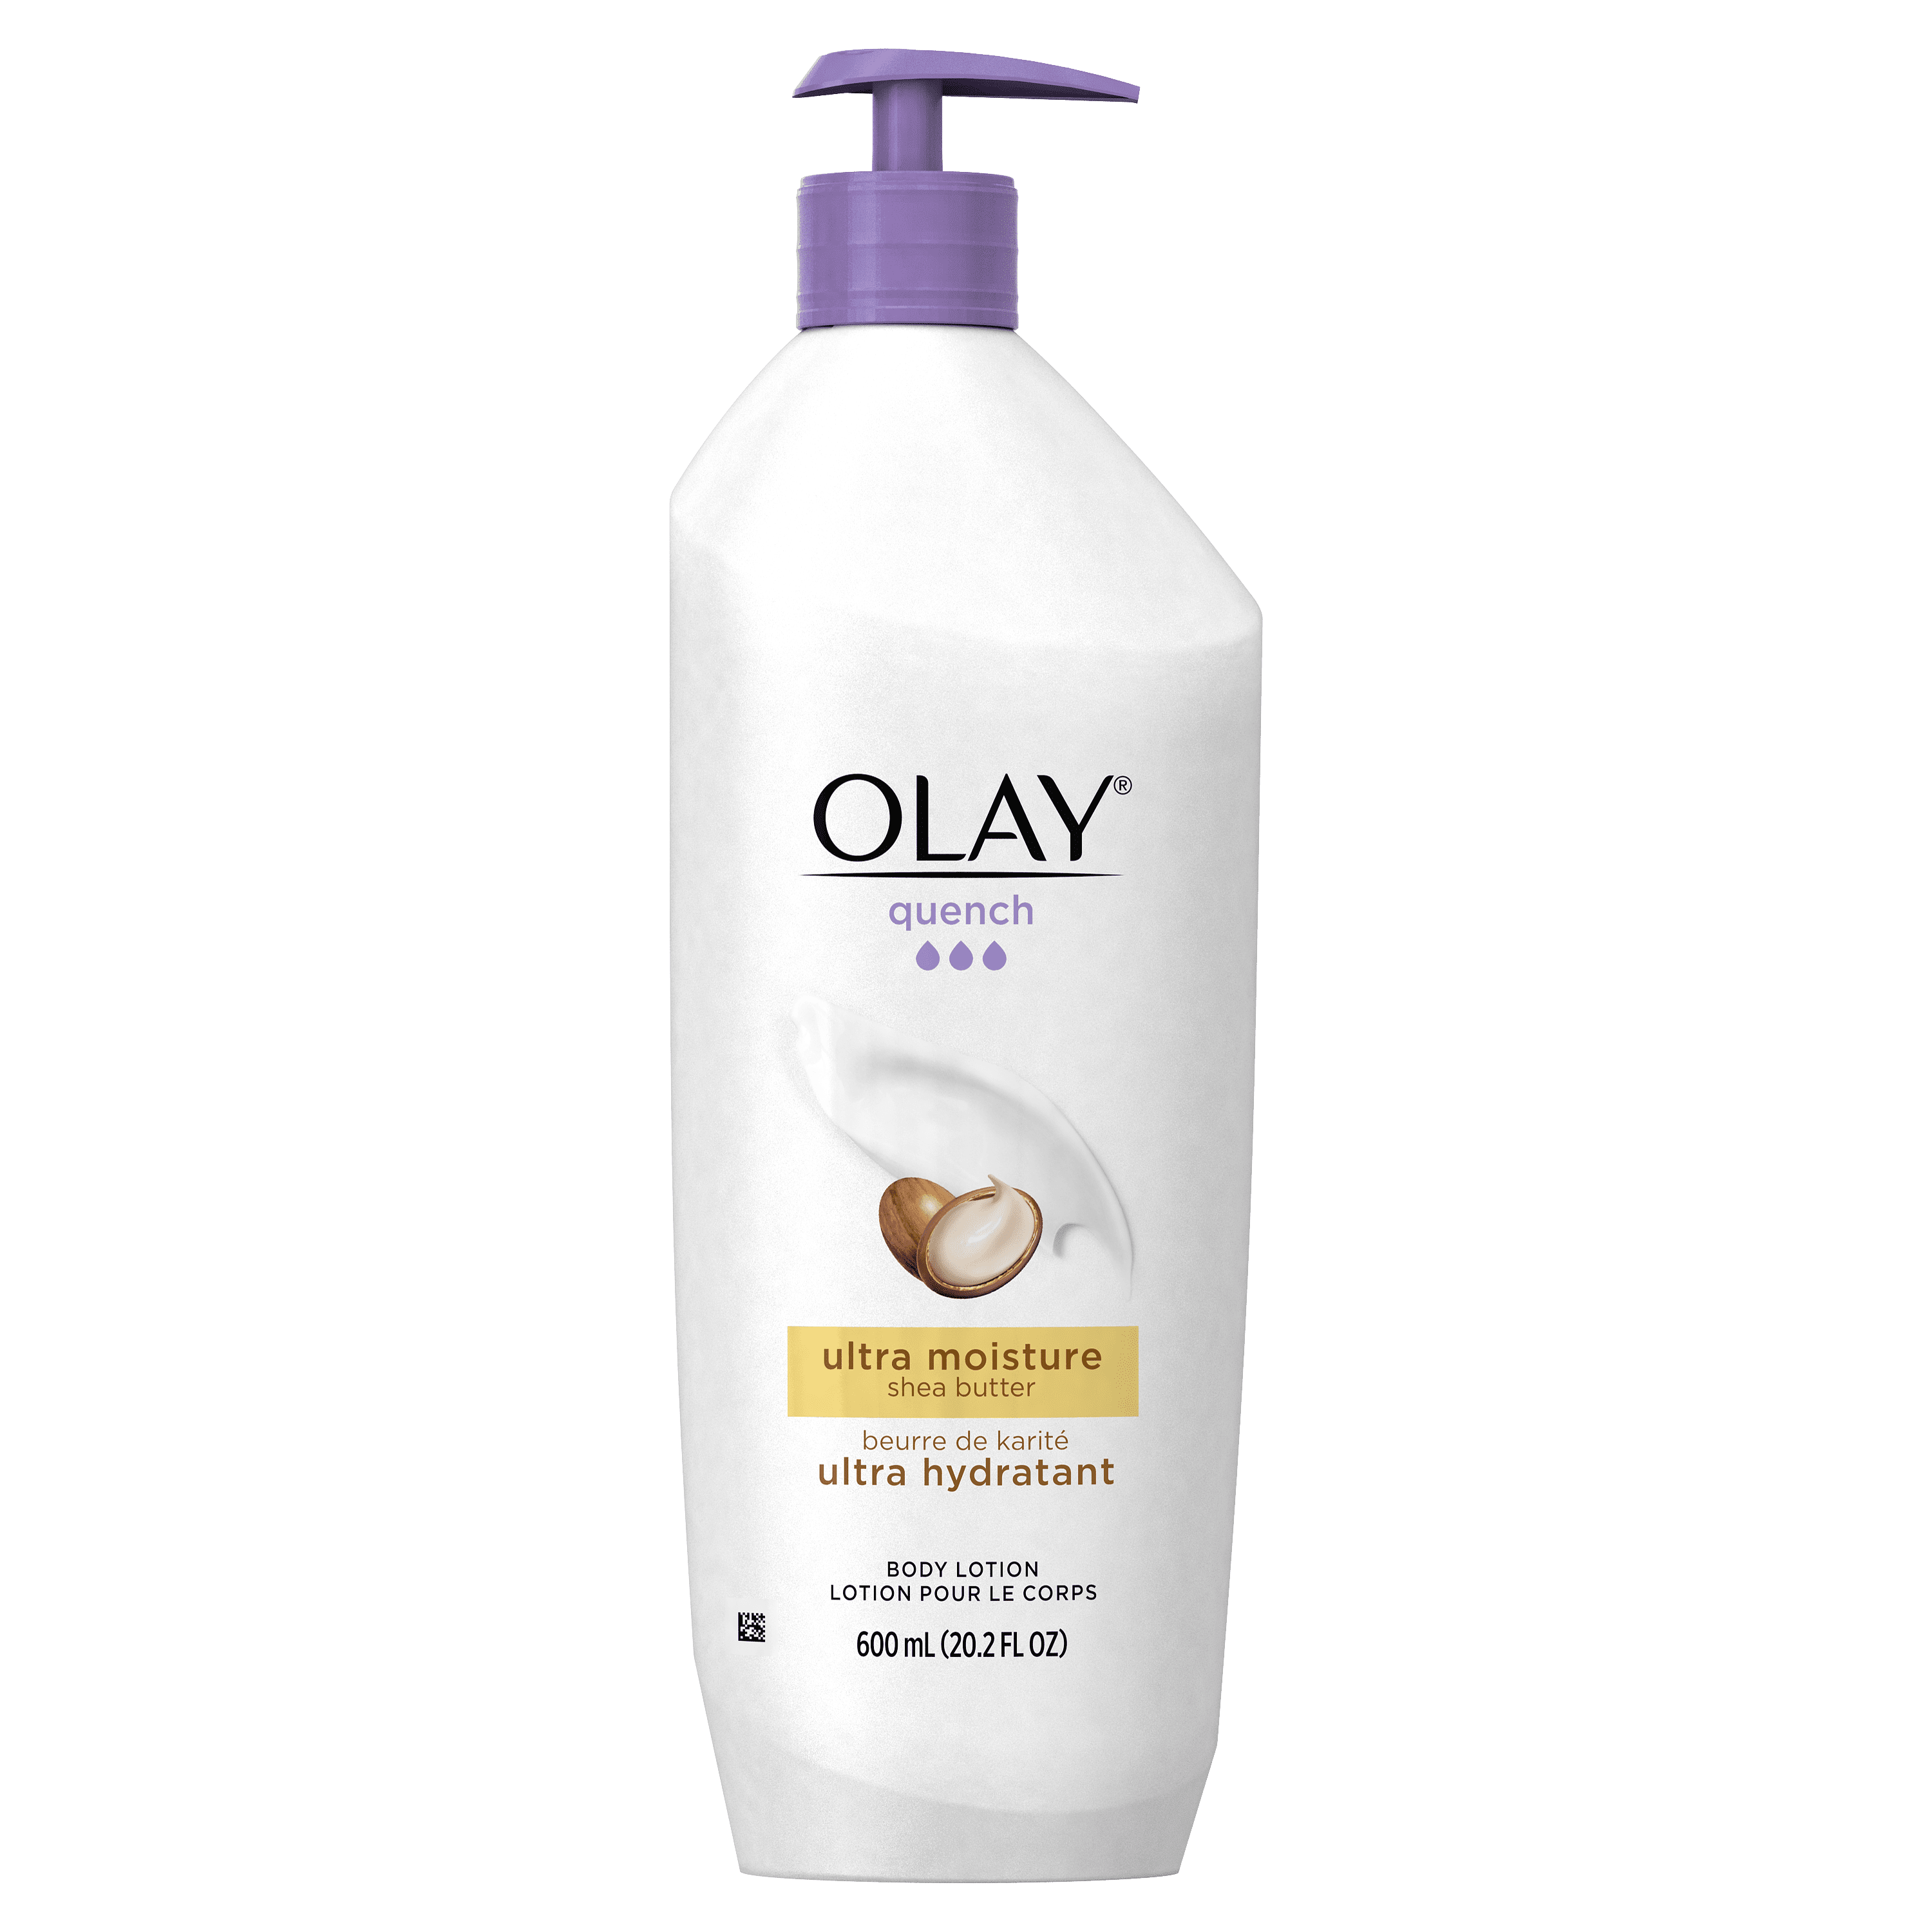 Quench Ultra Moisture Shea Butter Body Lotion